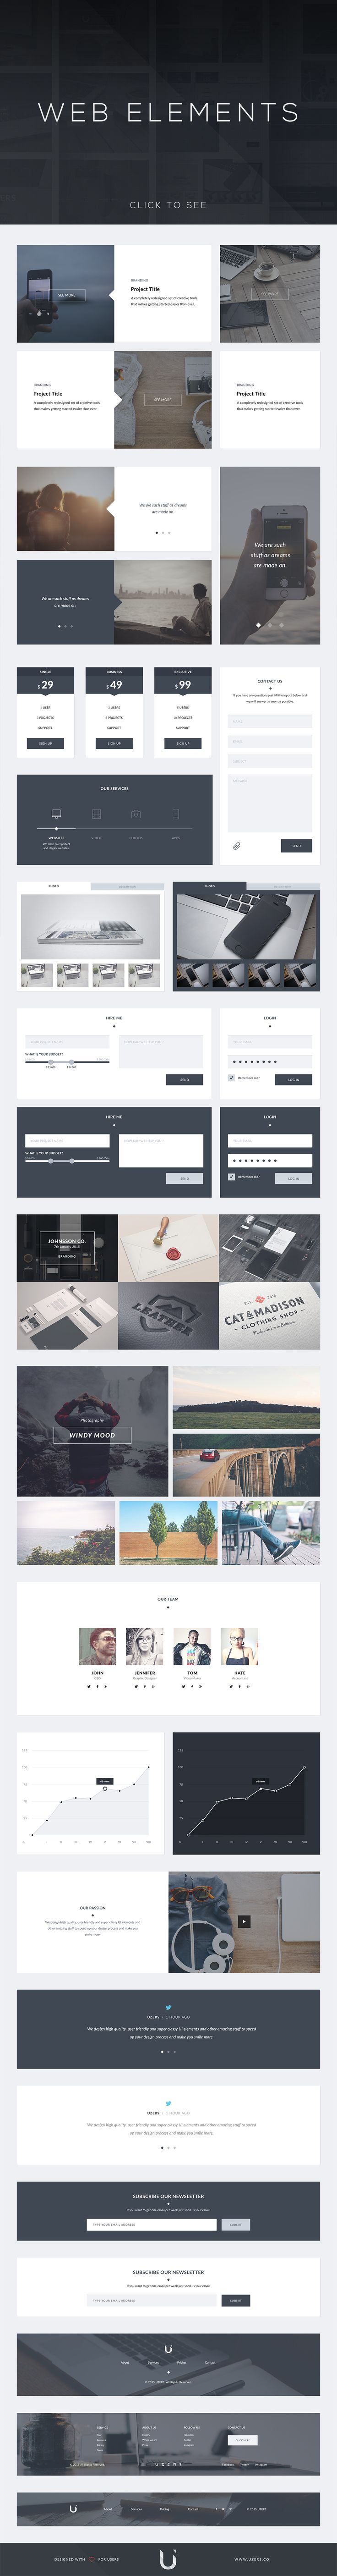 Uzers UI Kit - Web Elements - 3